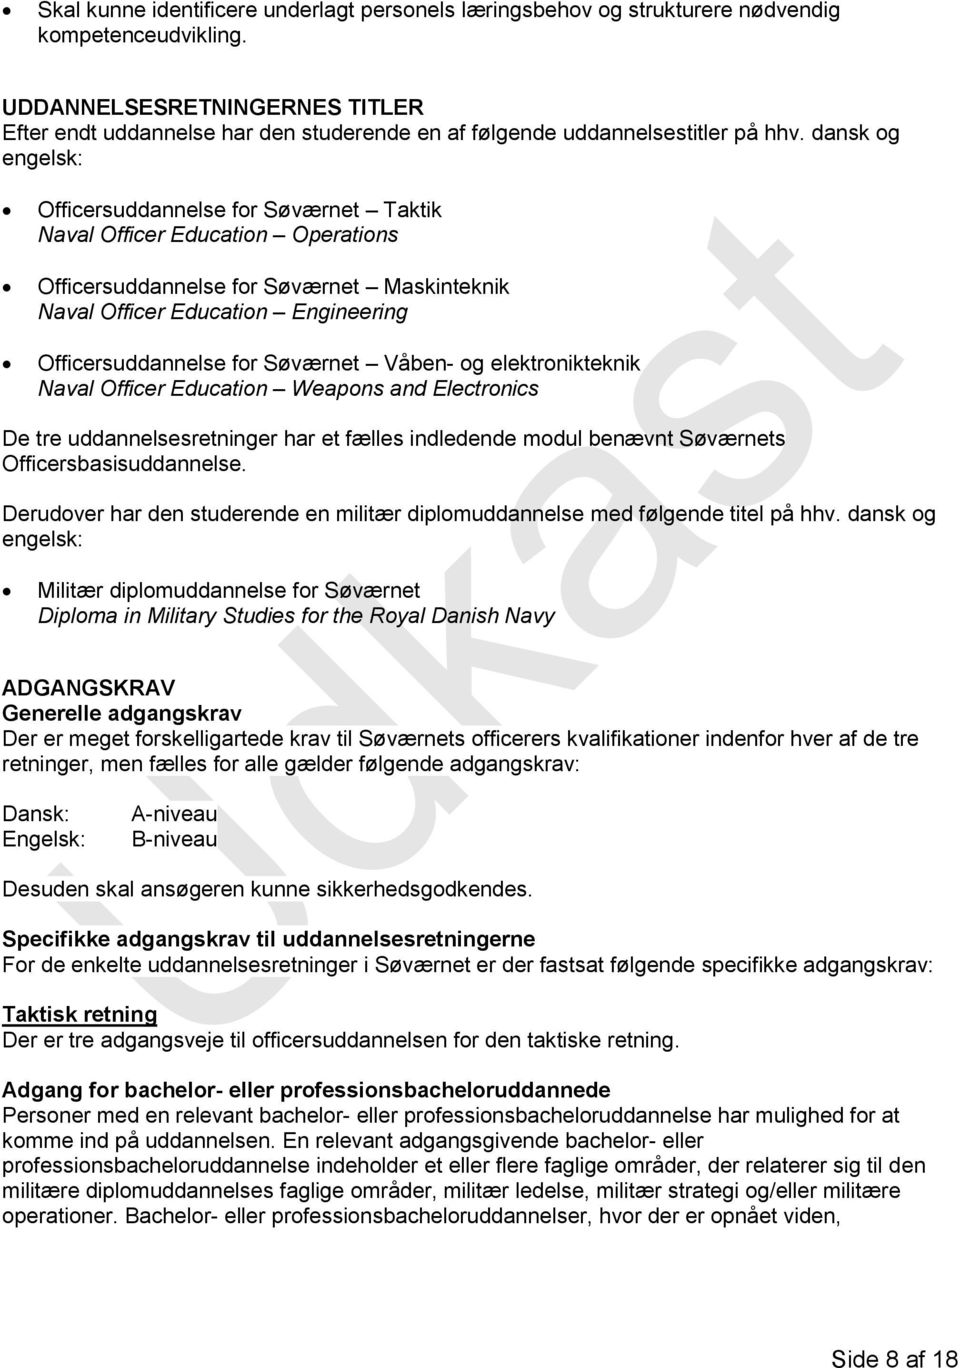 dansk og engelsk: Officersuddannelse for Søværnet Taktik Naval Officer Education Operations Officersuddannelse for Søværnet Maskinteknik Naval Officer Education Engineering Officersuddannelse for